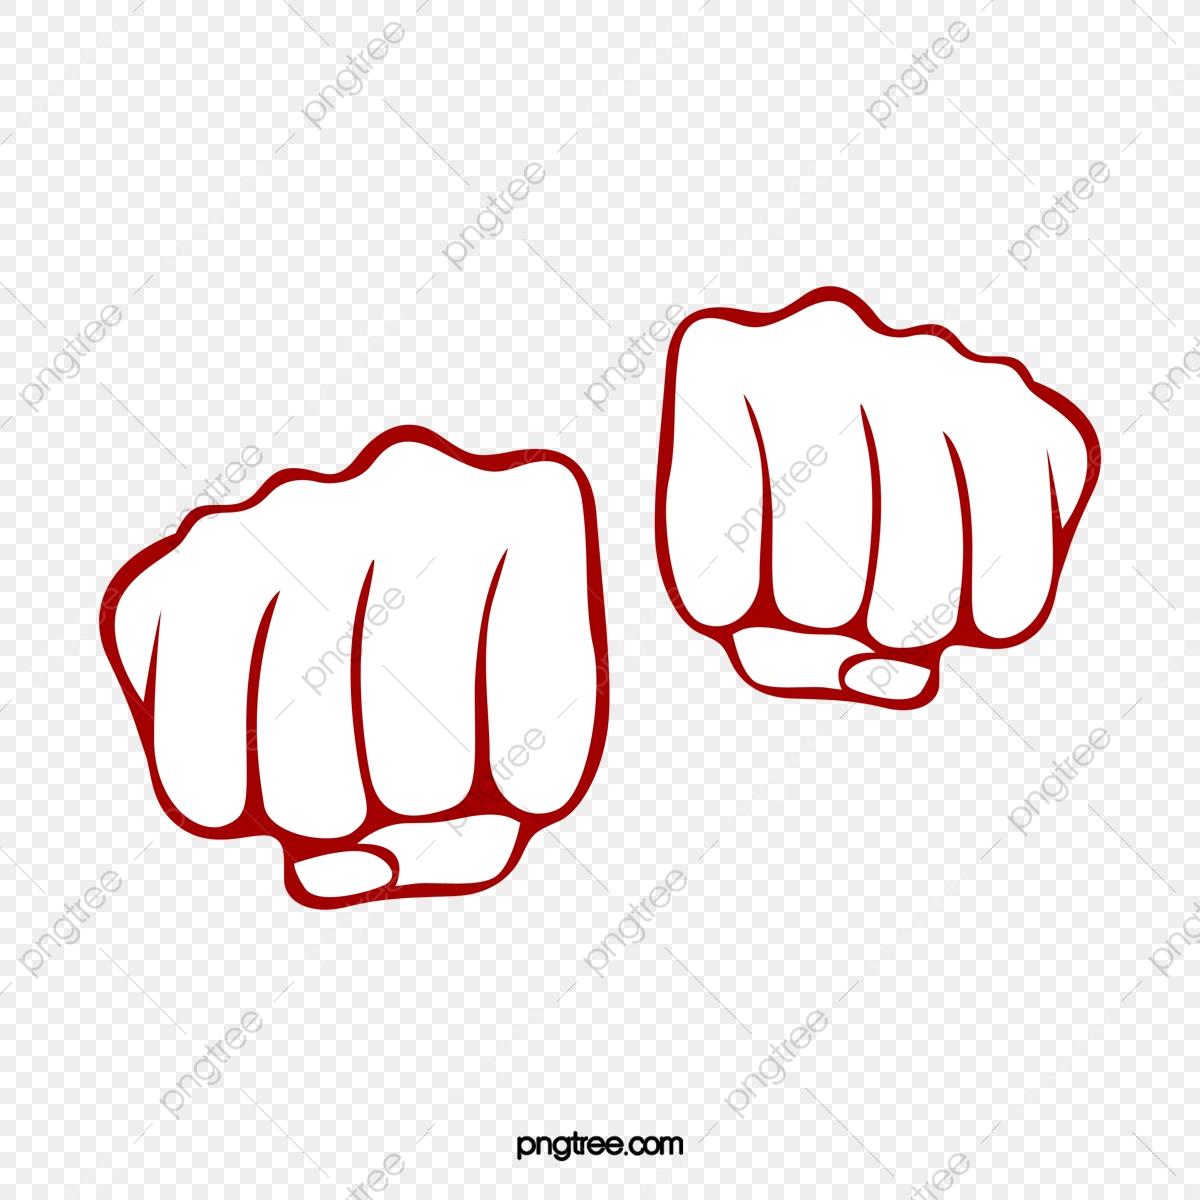 Fist clipart two. Fists png transparent